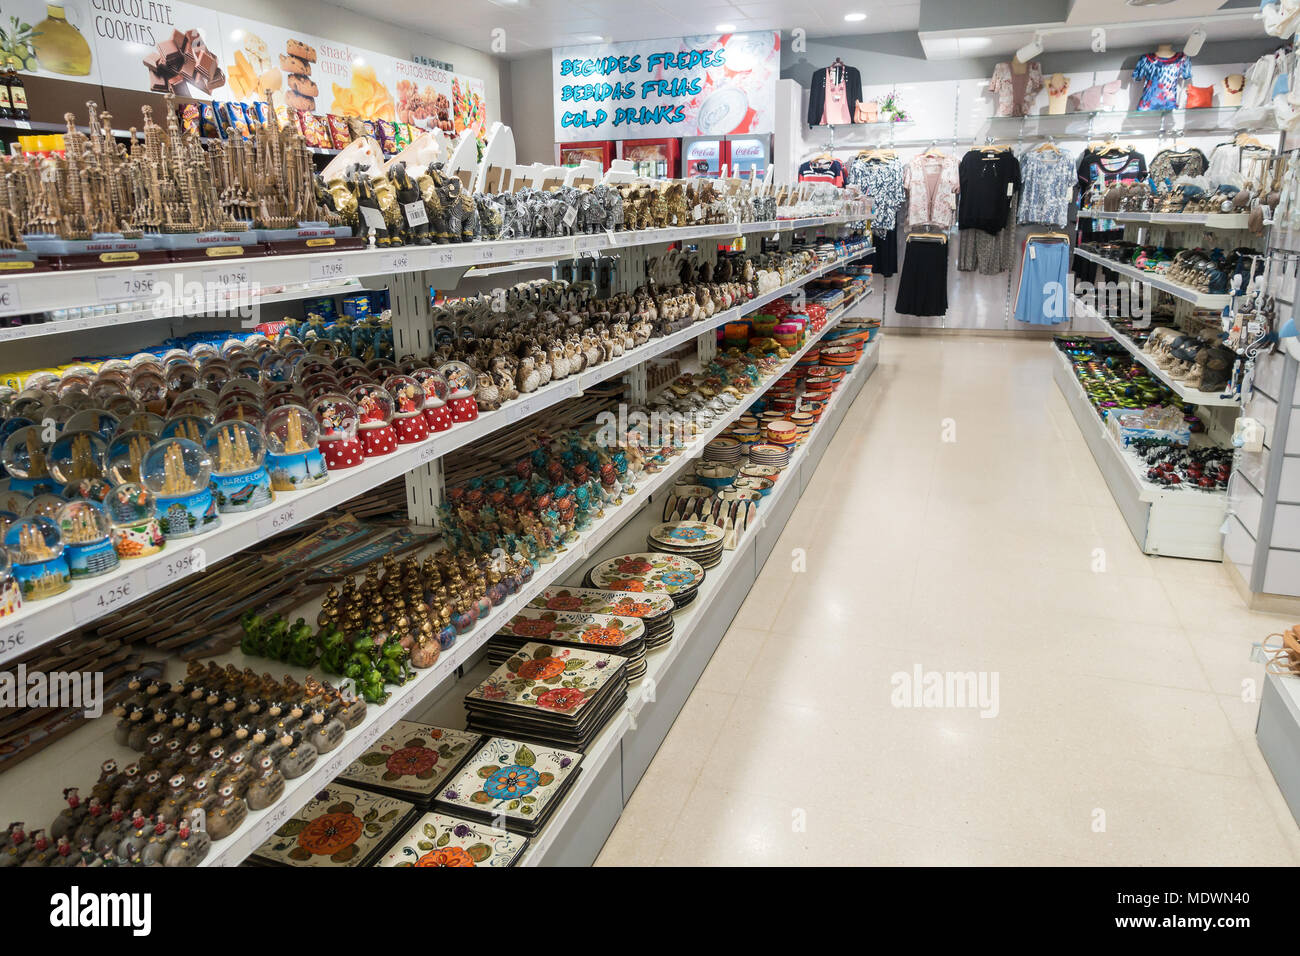 A display of gifts, souvenirs and memorabilia in a souvenir shop. Stock Photo